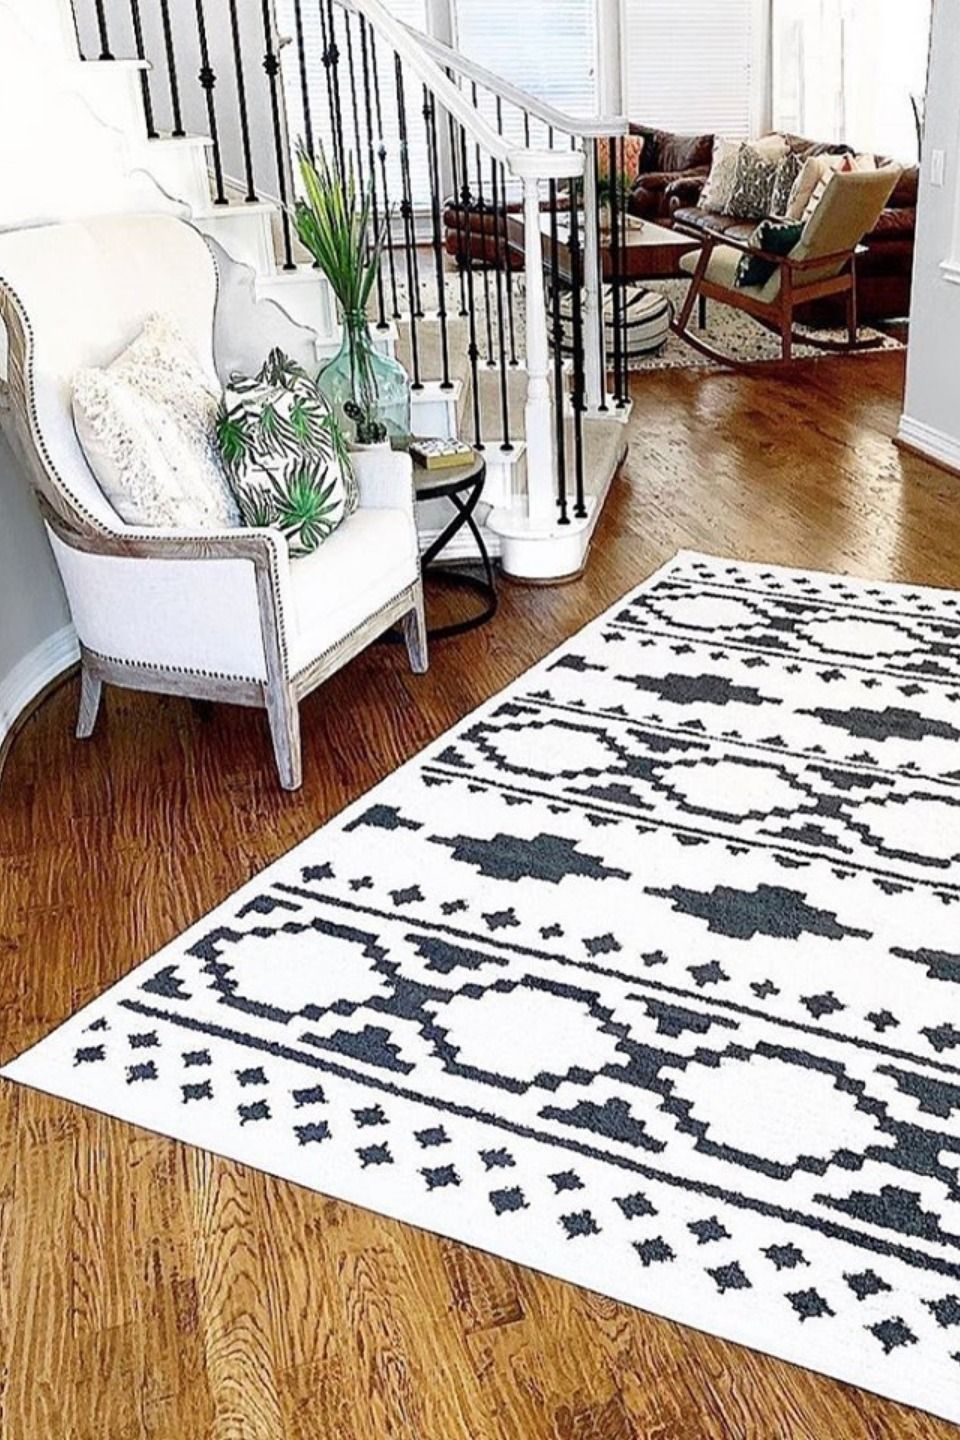 This Beautiful Amoret Rug Is Definitely